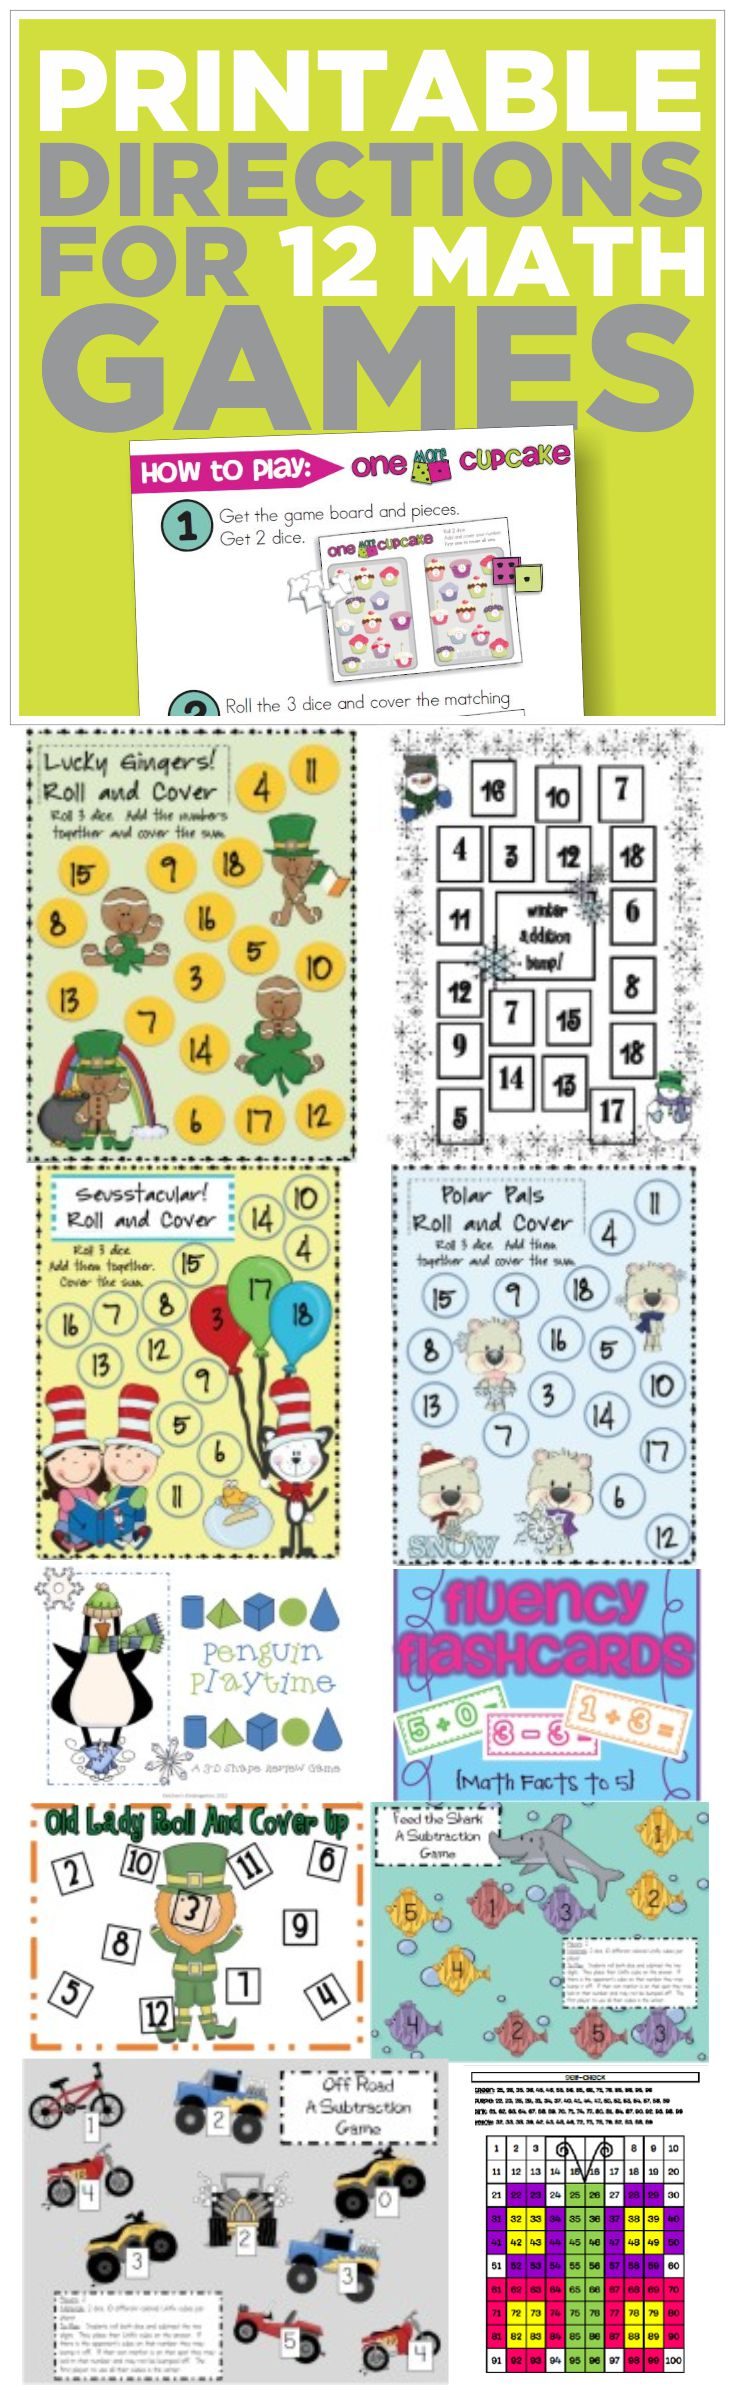 This is awesome! Free picture directions for 12 kindergarten math games (which are also all free). This is perfect for my math centers.